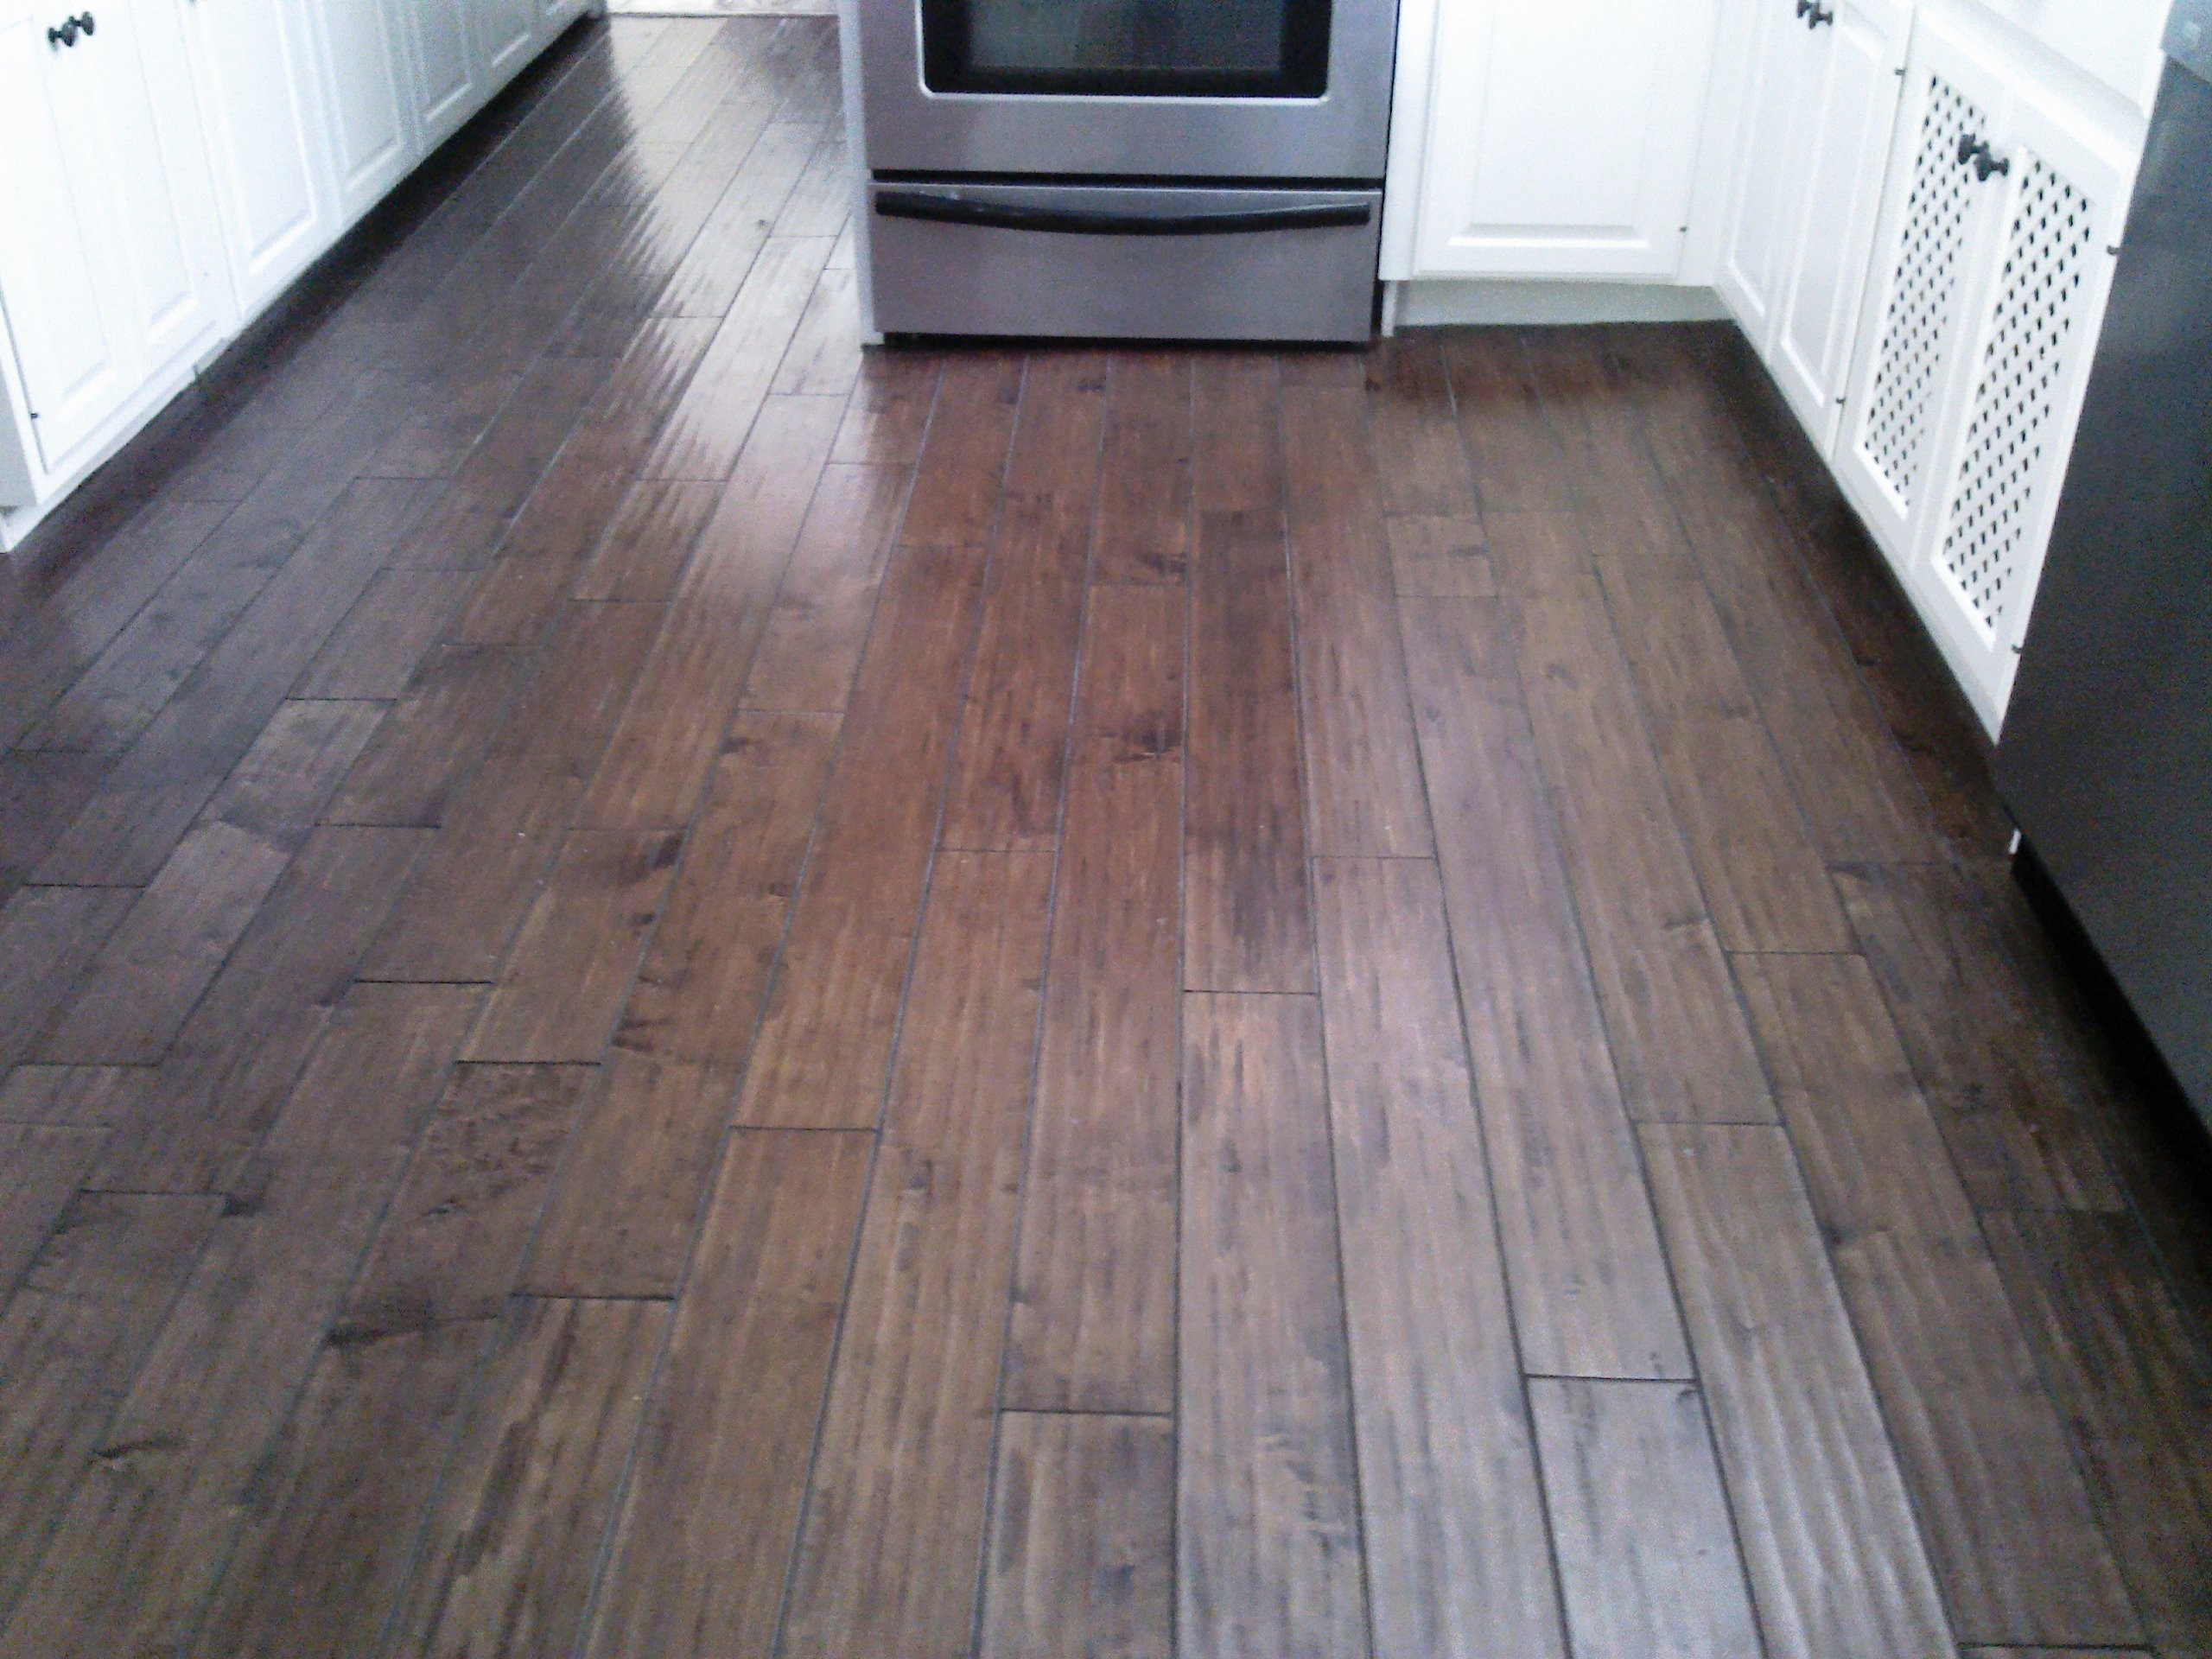 cabinetry blog | laminate wood flooring in kitchen